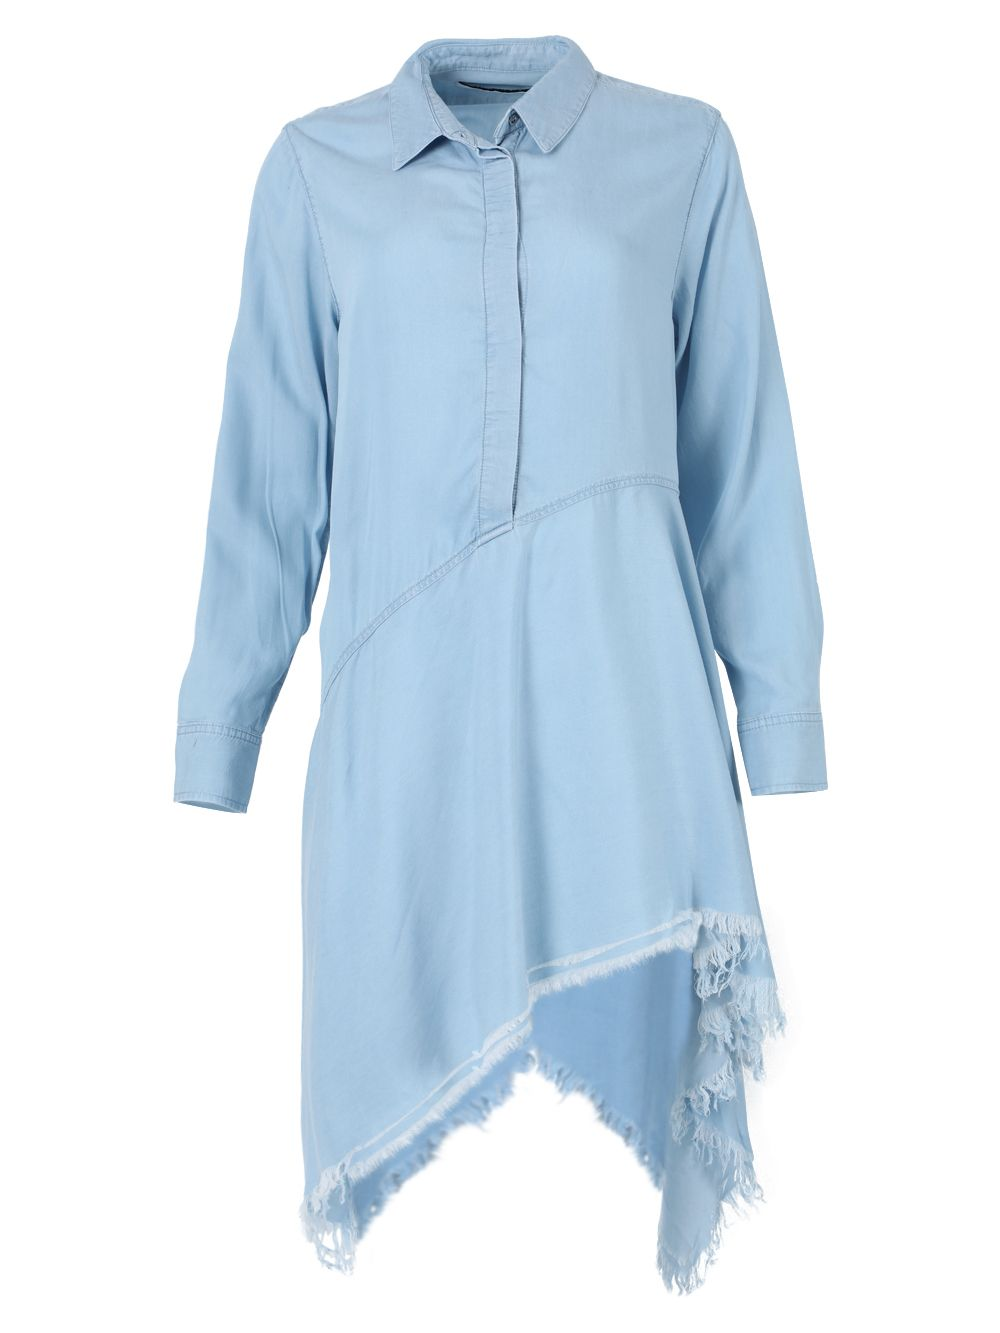 Marques' Almeida LIGHT BLUE WASH ASYMMETRIC SHIRT DRESS